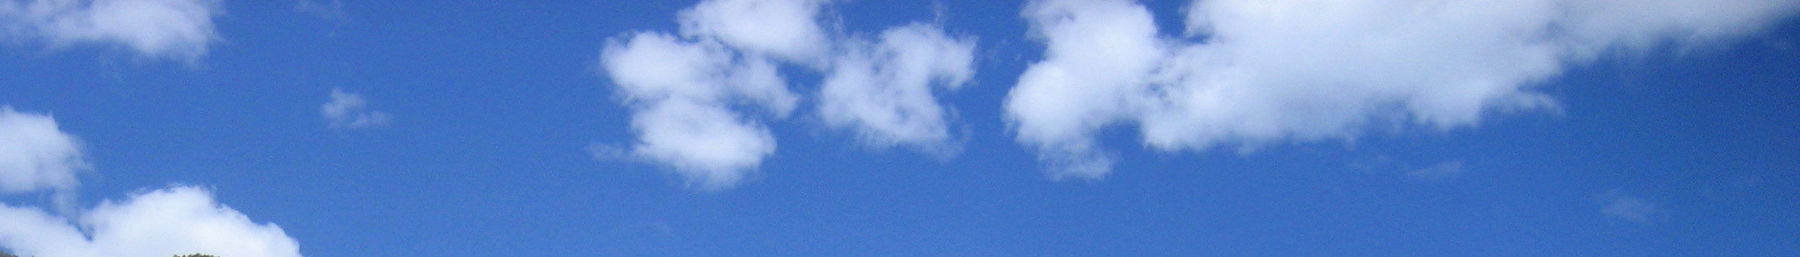 Lumpytrout page banner wikivoyage blue sky clouds.jpg